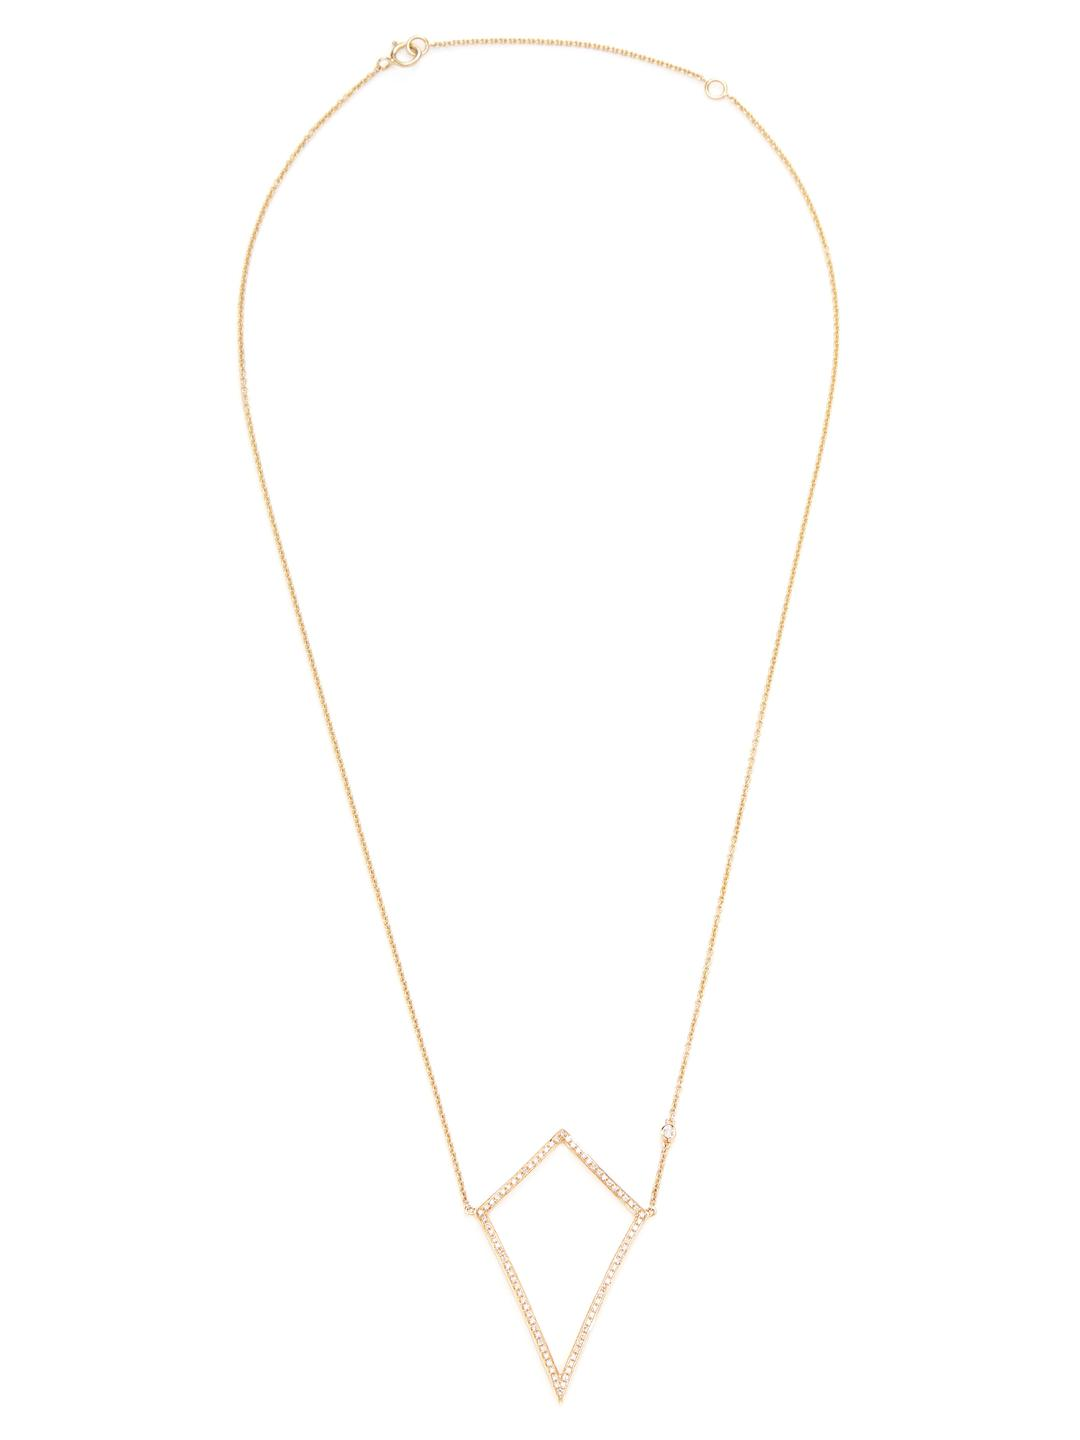 SHAY 14k Yellow Gold & 0.24 Total Ct. Diamond Open Kite Necklace